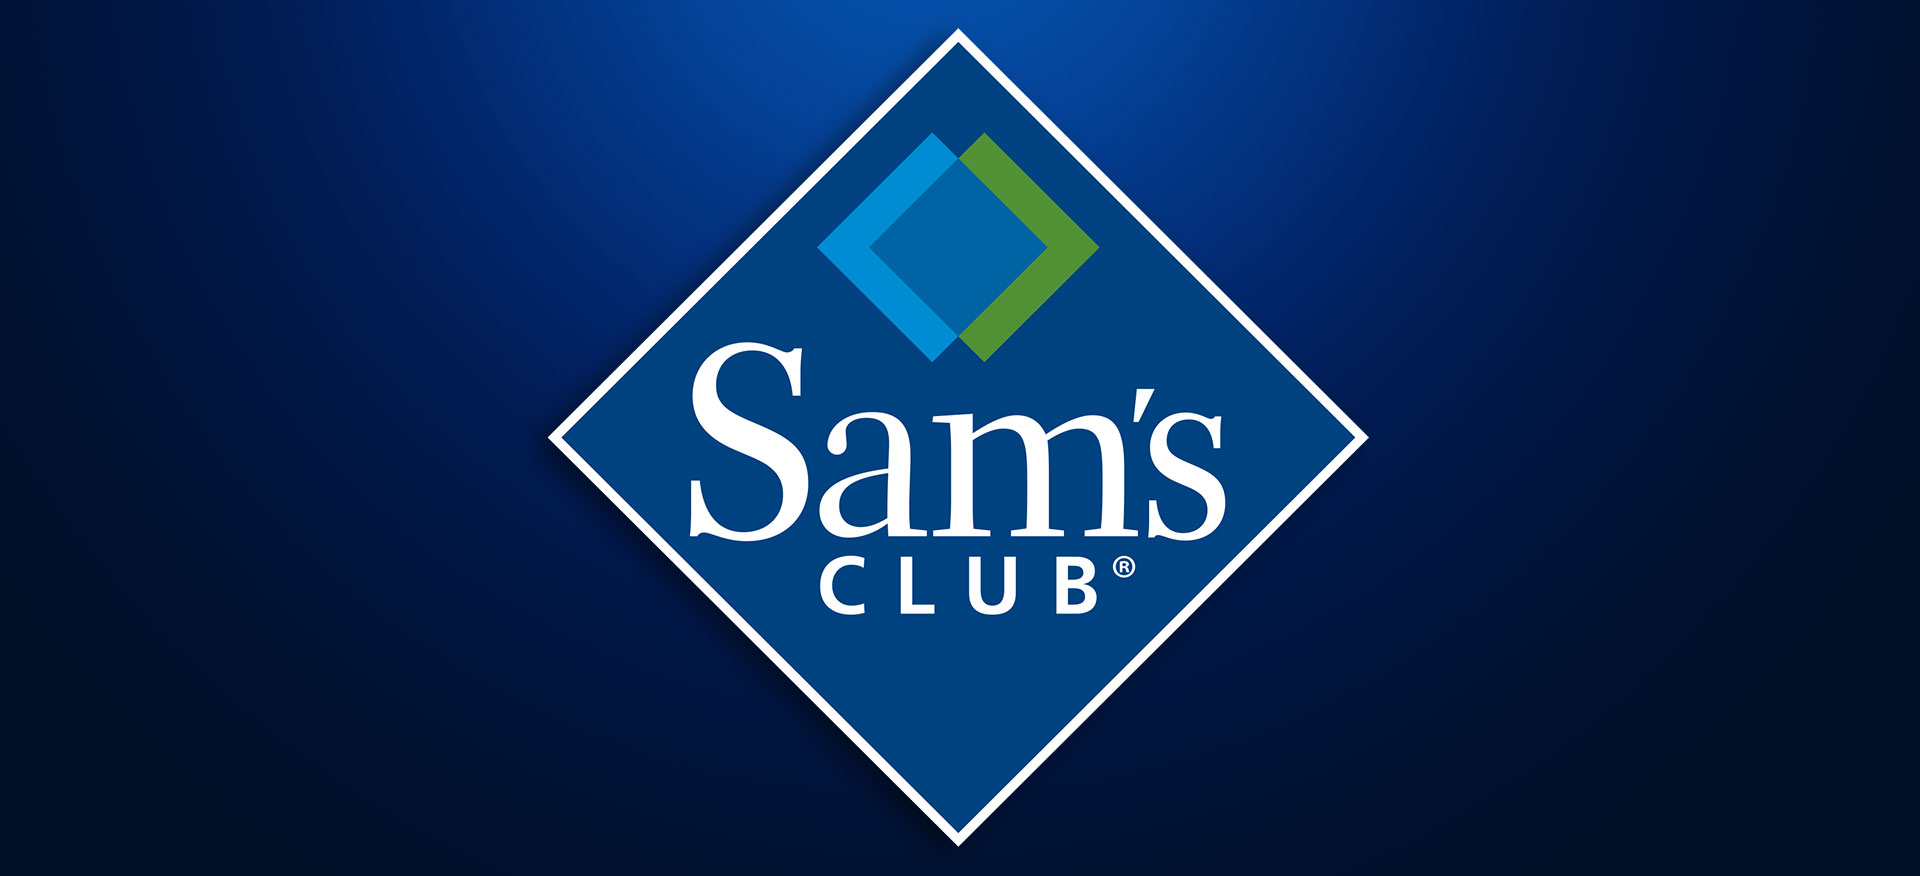 What time does Sam's Club open on New Year's Day ? Love it or hate it, Sam's Club is growing at a pretty consistent pace with locations opening all over the place.